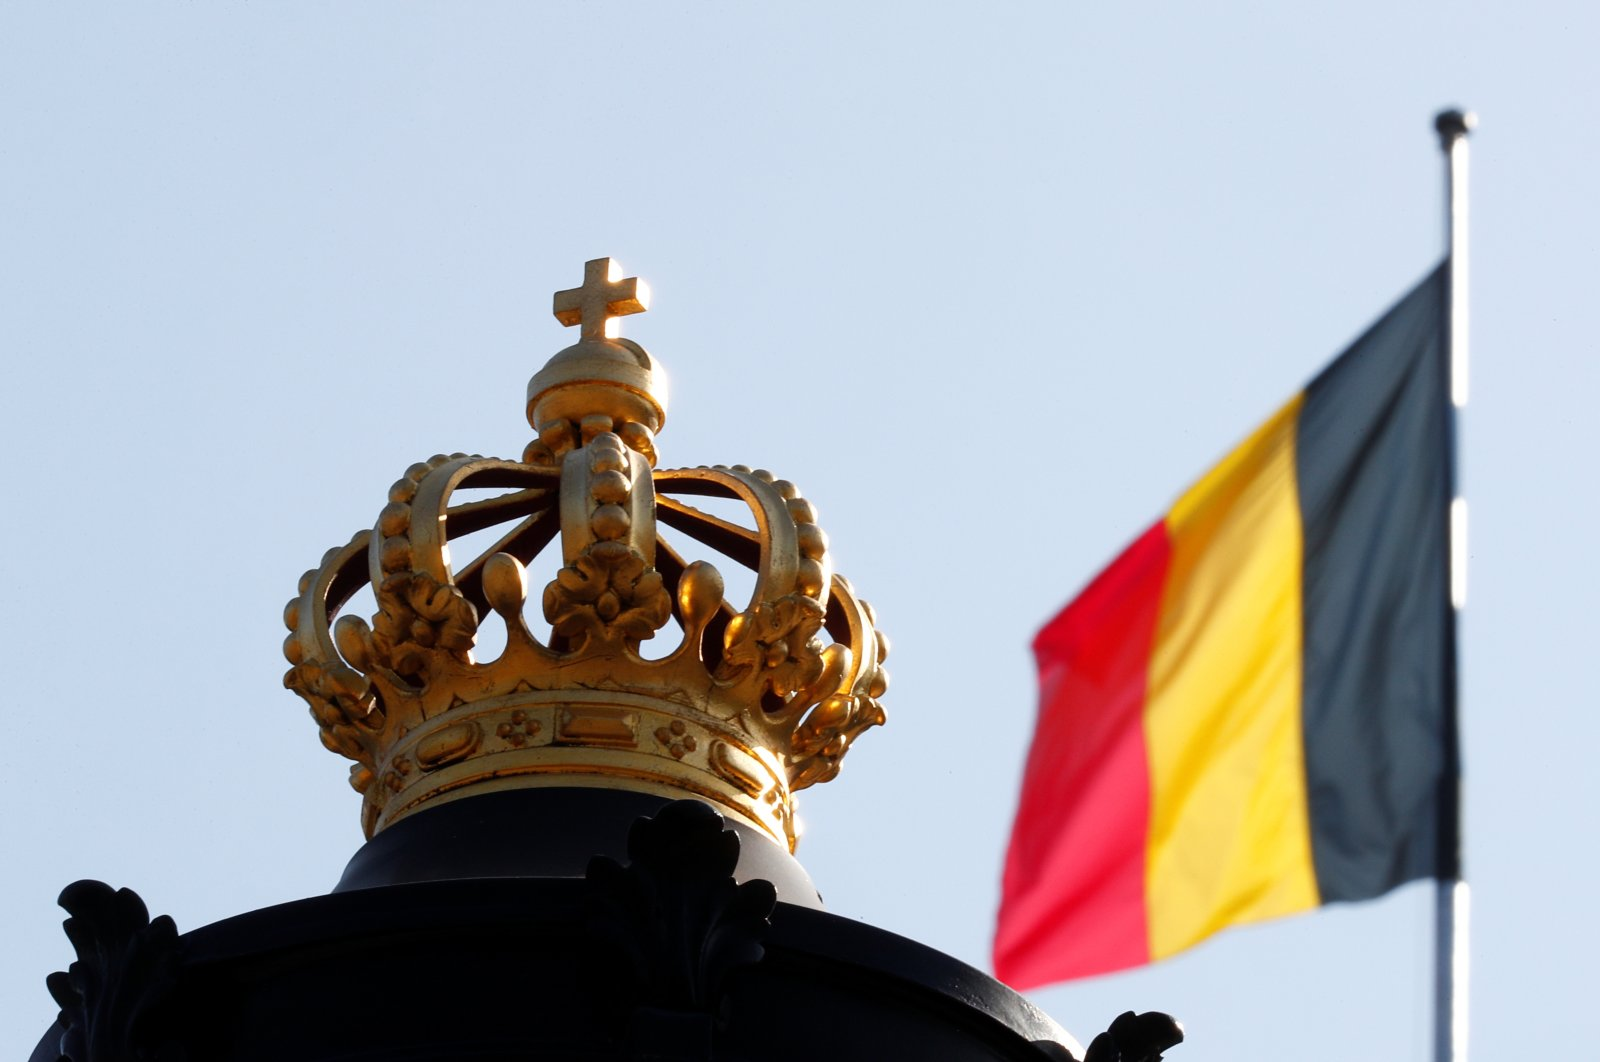 The Belgian flag is seen outside the Royal Palace of Brussels, in Brussels, Belgium, Sept. 21, 2020. (Reuters File Photo)